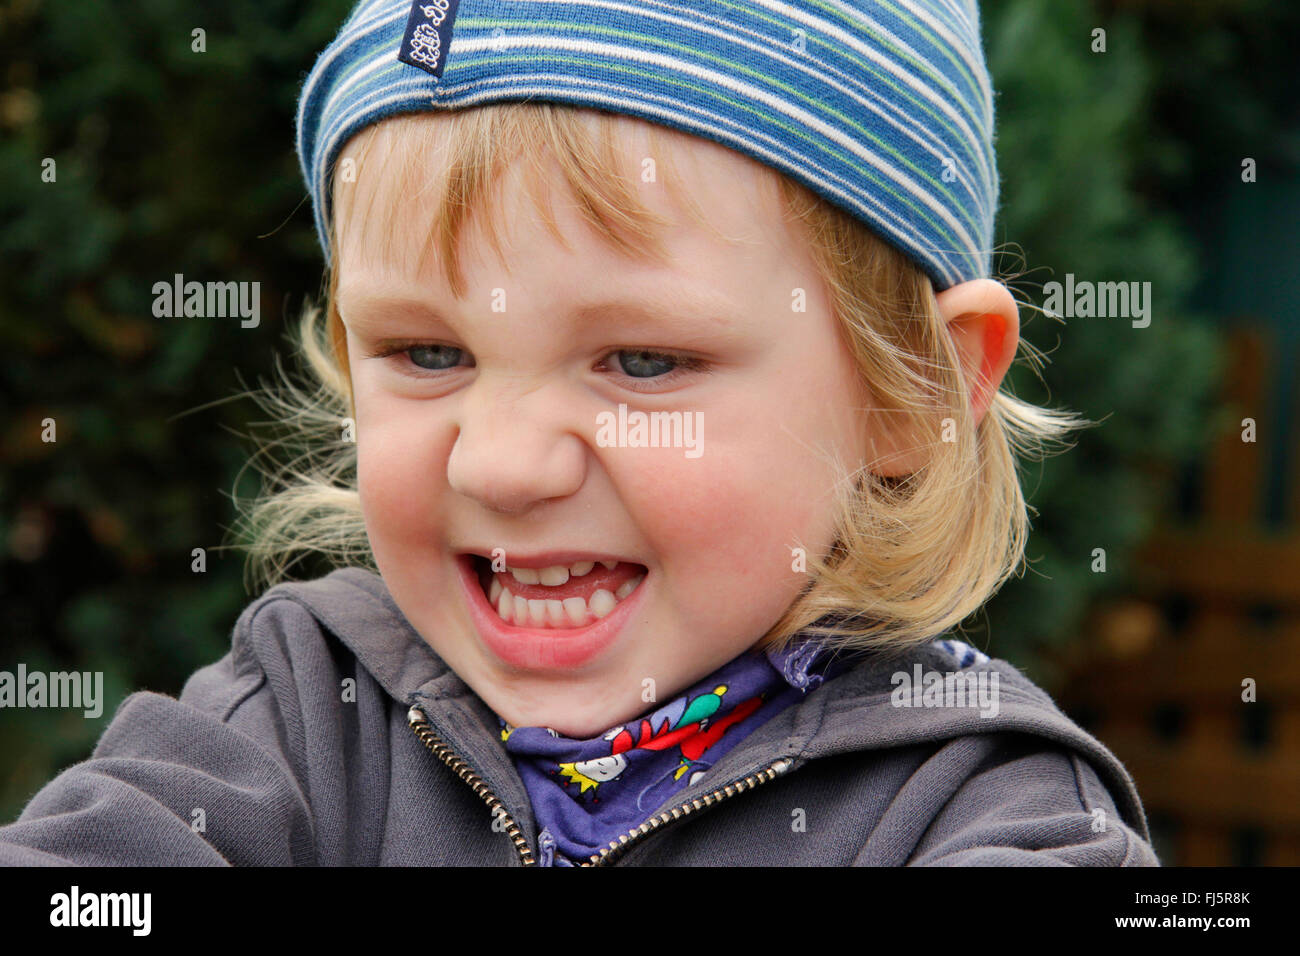 little boy is in bad temper, portrait of a child, Germany - Stock Image